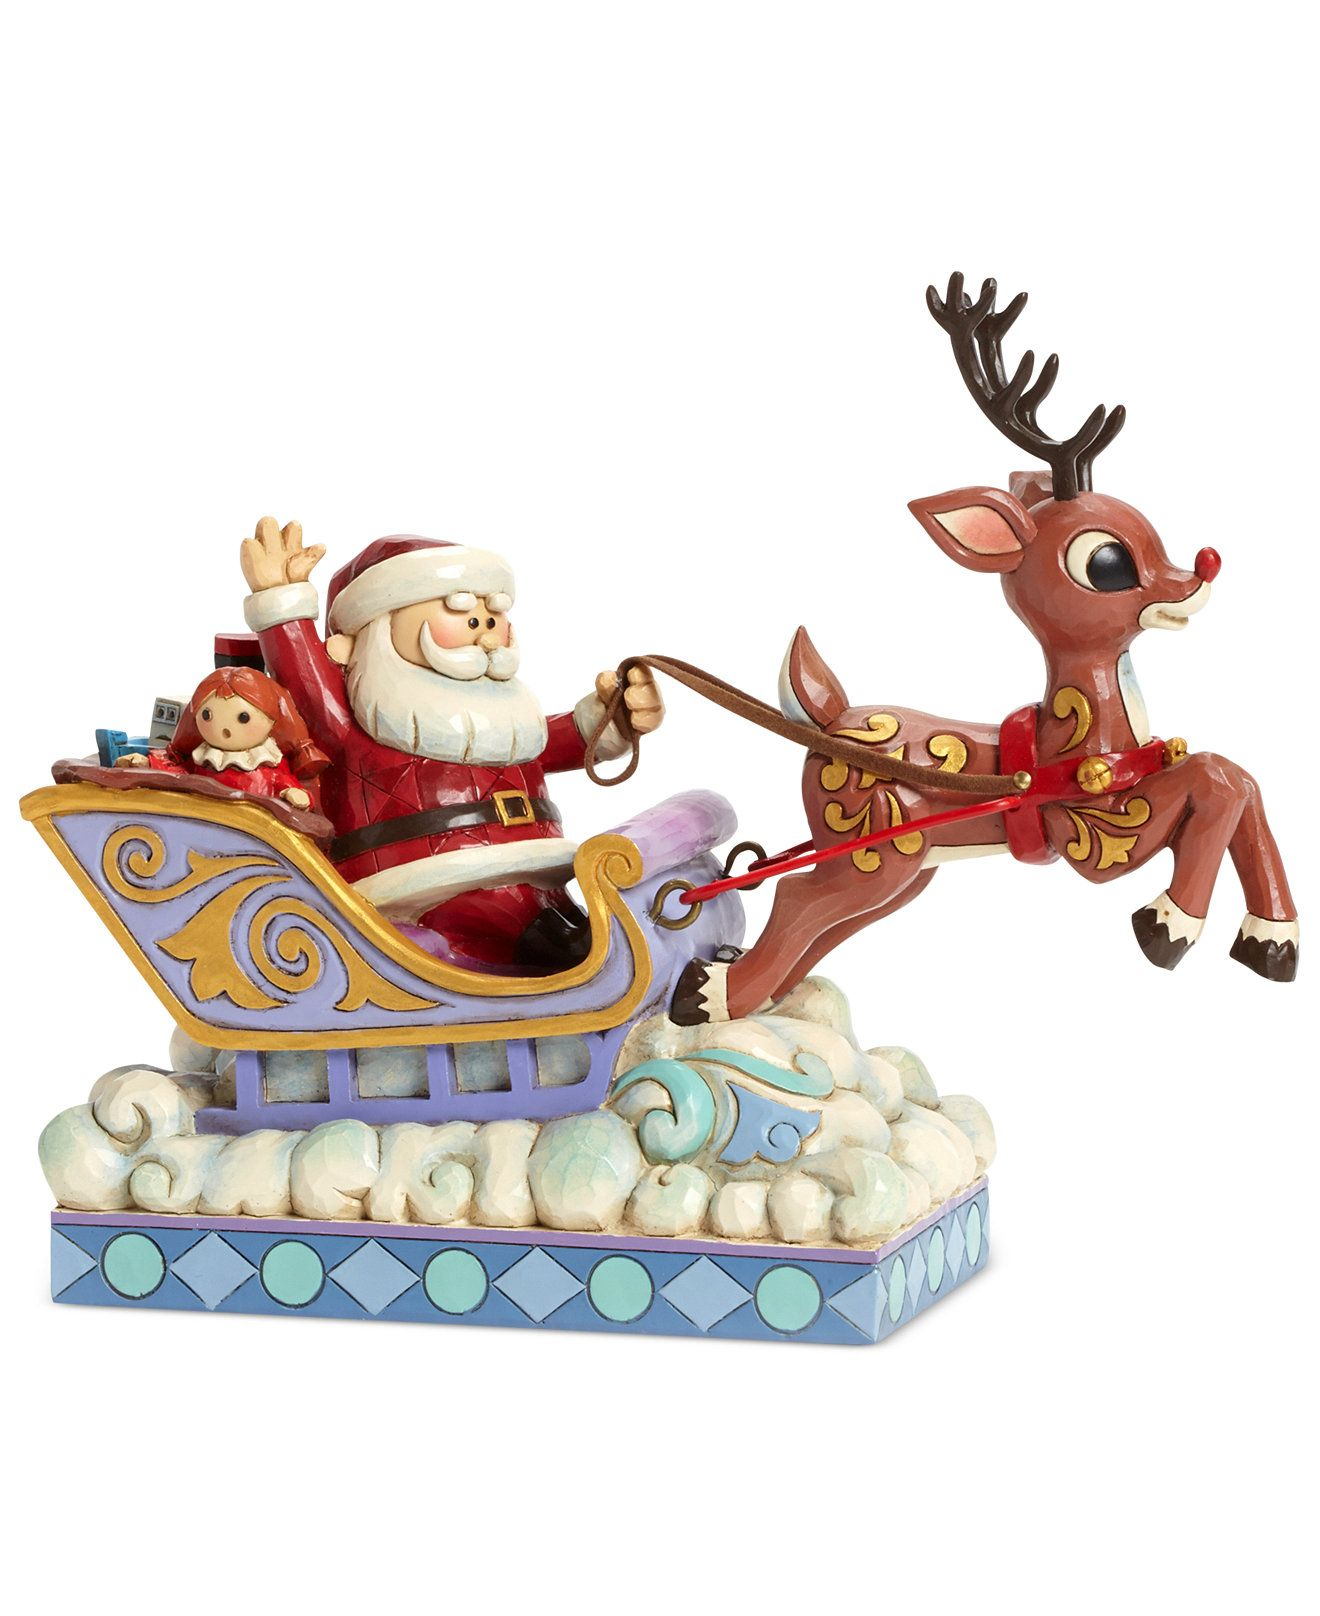 jim shore rudolph pulling sleigh collectible figurine holiday lane